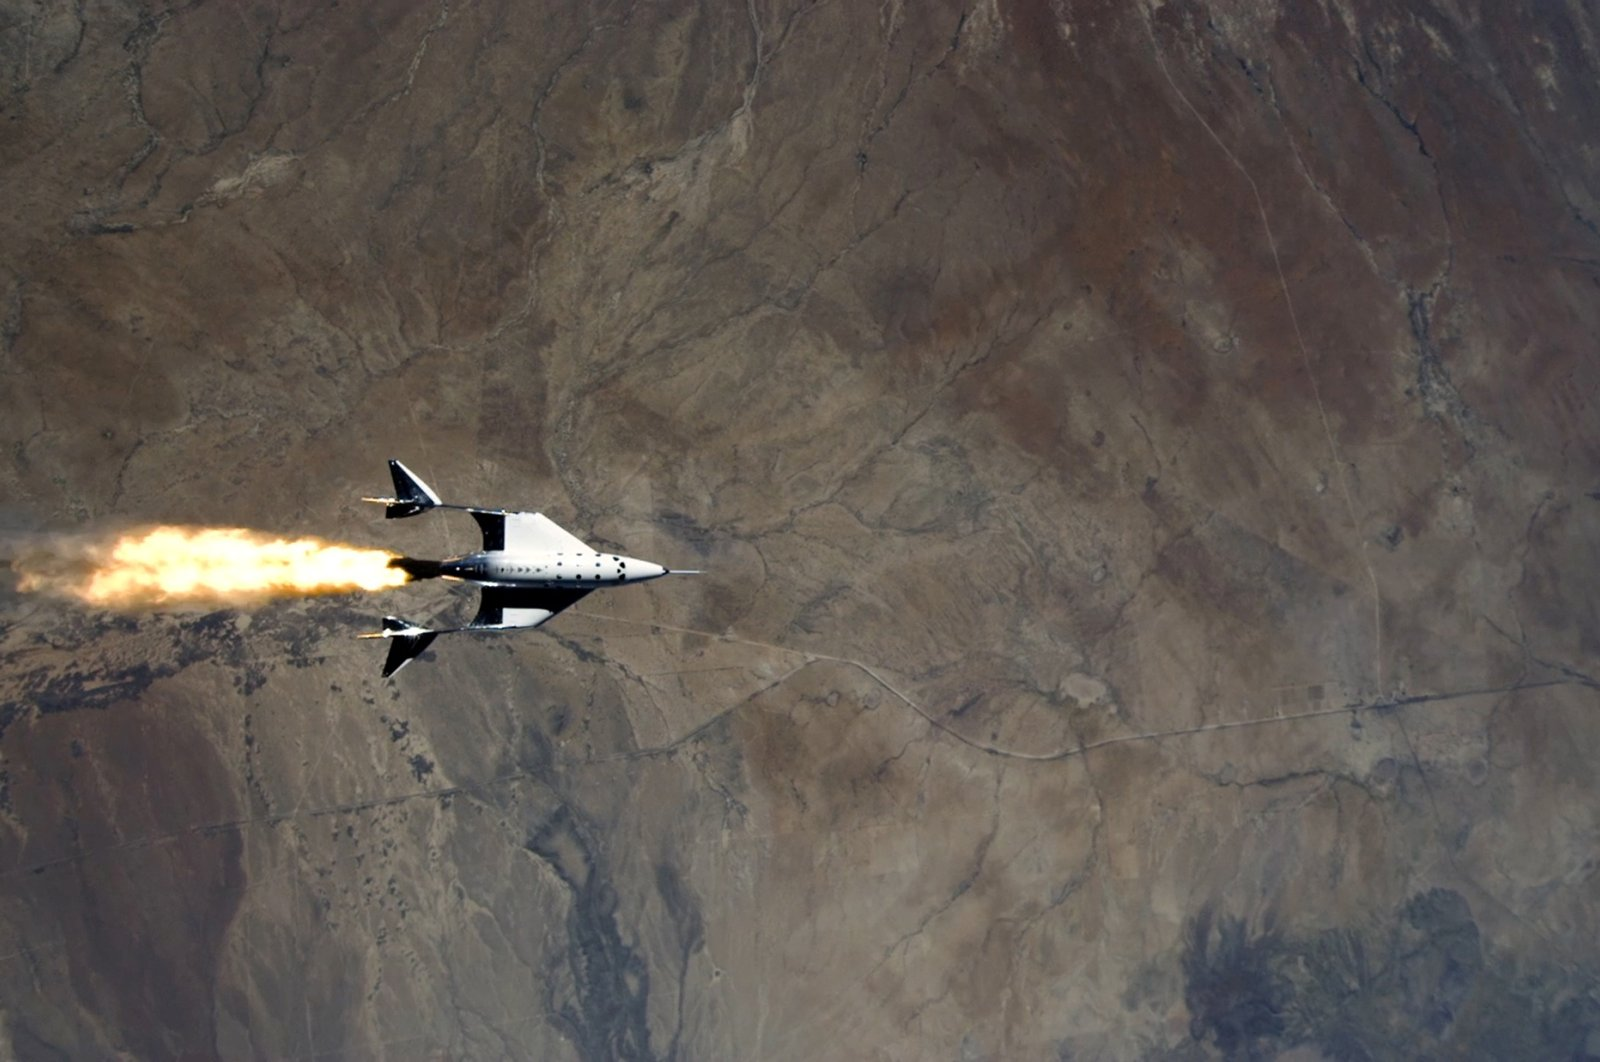 This still image from a video shows Virgin Galactic's VSS Unity starting its engines after release from its mothership as it commences its first spaceflight after launch from Spaceport America, New Mexico, U.S., May 22, 2021. (Reuters Photo)